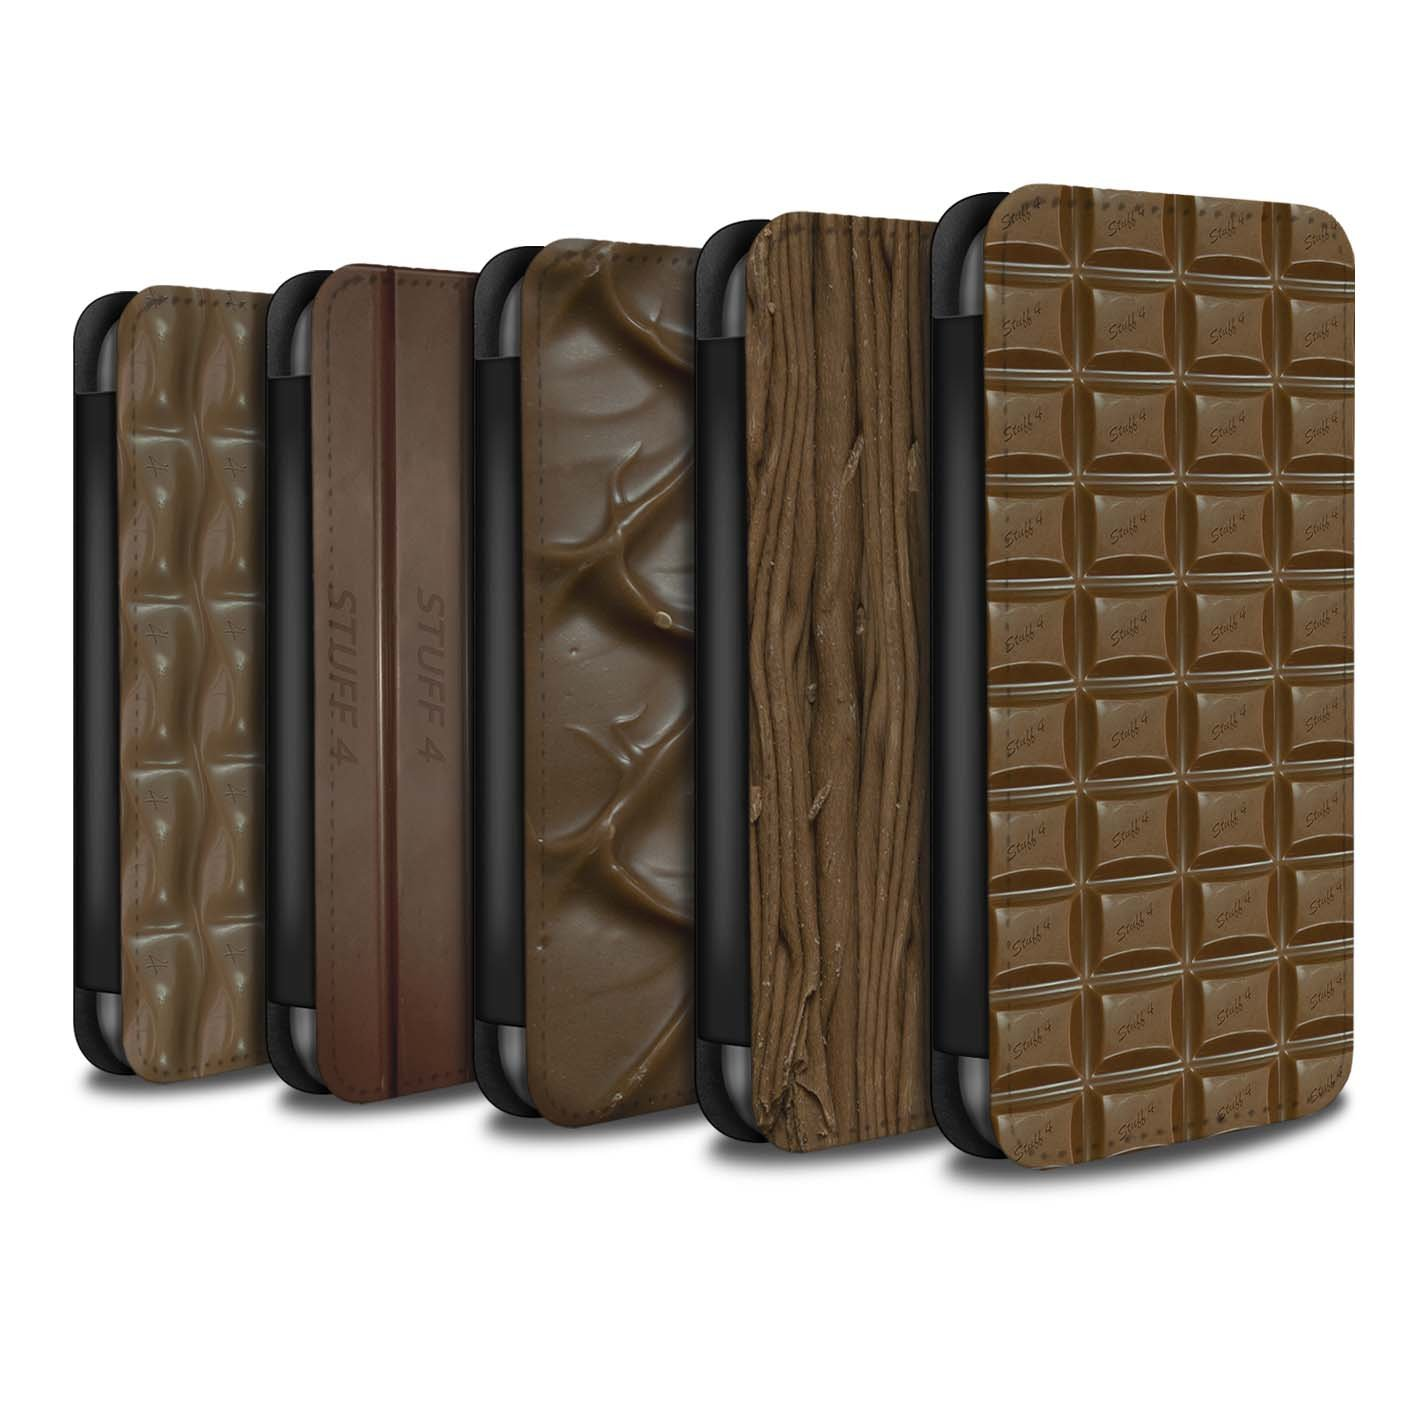 STUFF4 PU Leather Wallet Flip Case/Cover for Apple iPhone X/10 / Multipack (10 Designs) Design / Chocolate Collection